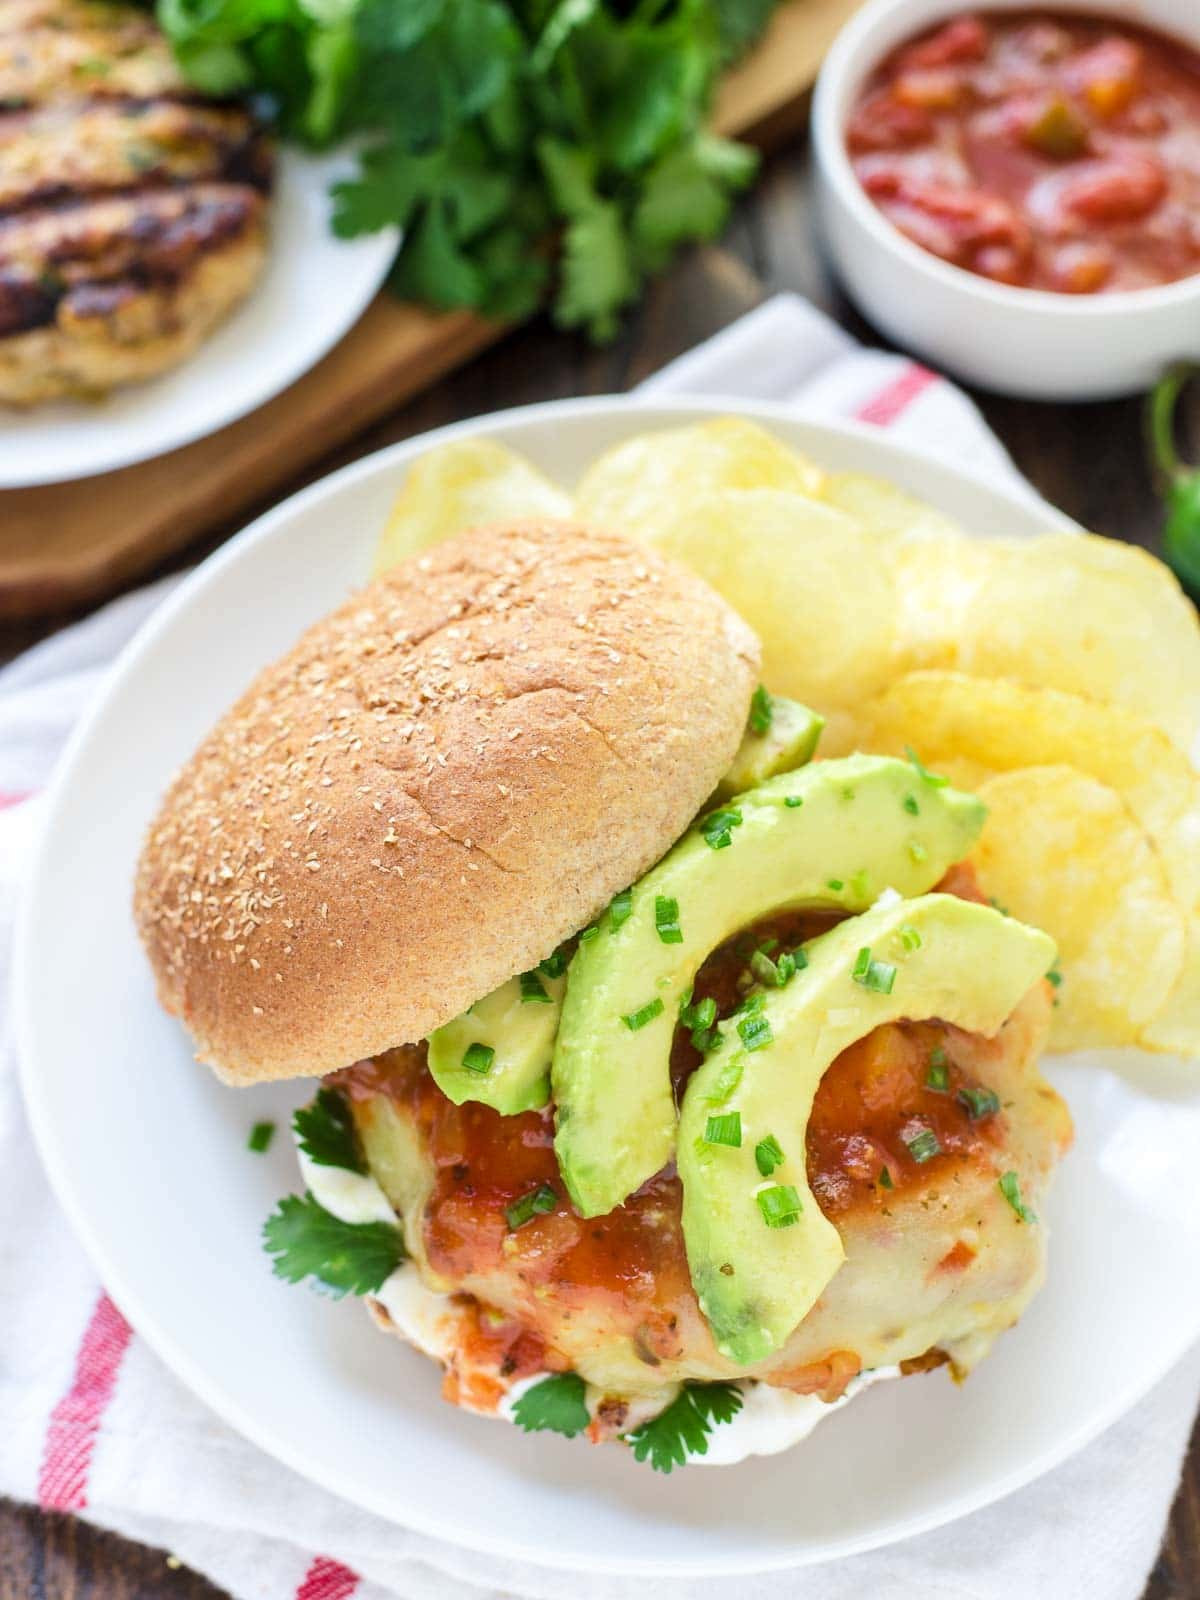 Healthy Side Dishes For Hamburgers  Green Chile Grilled Chicken Burgers